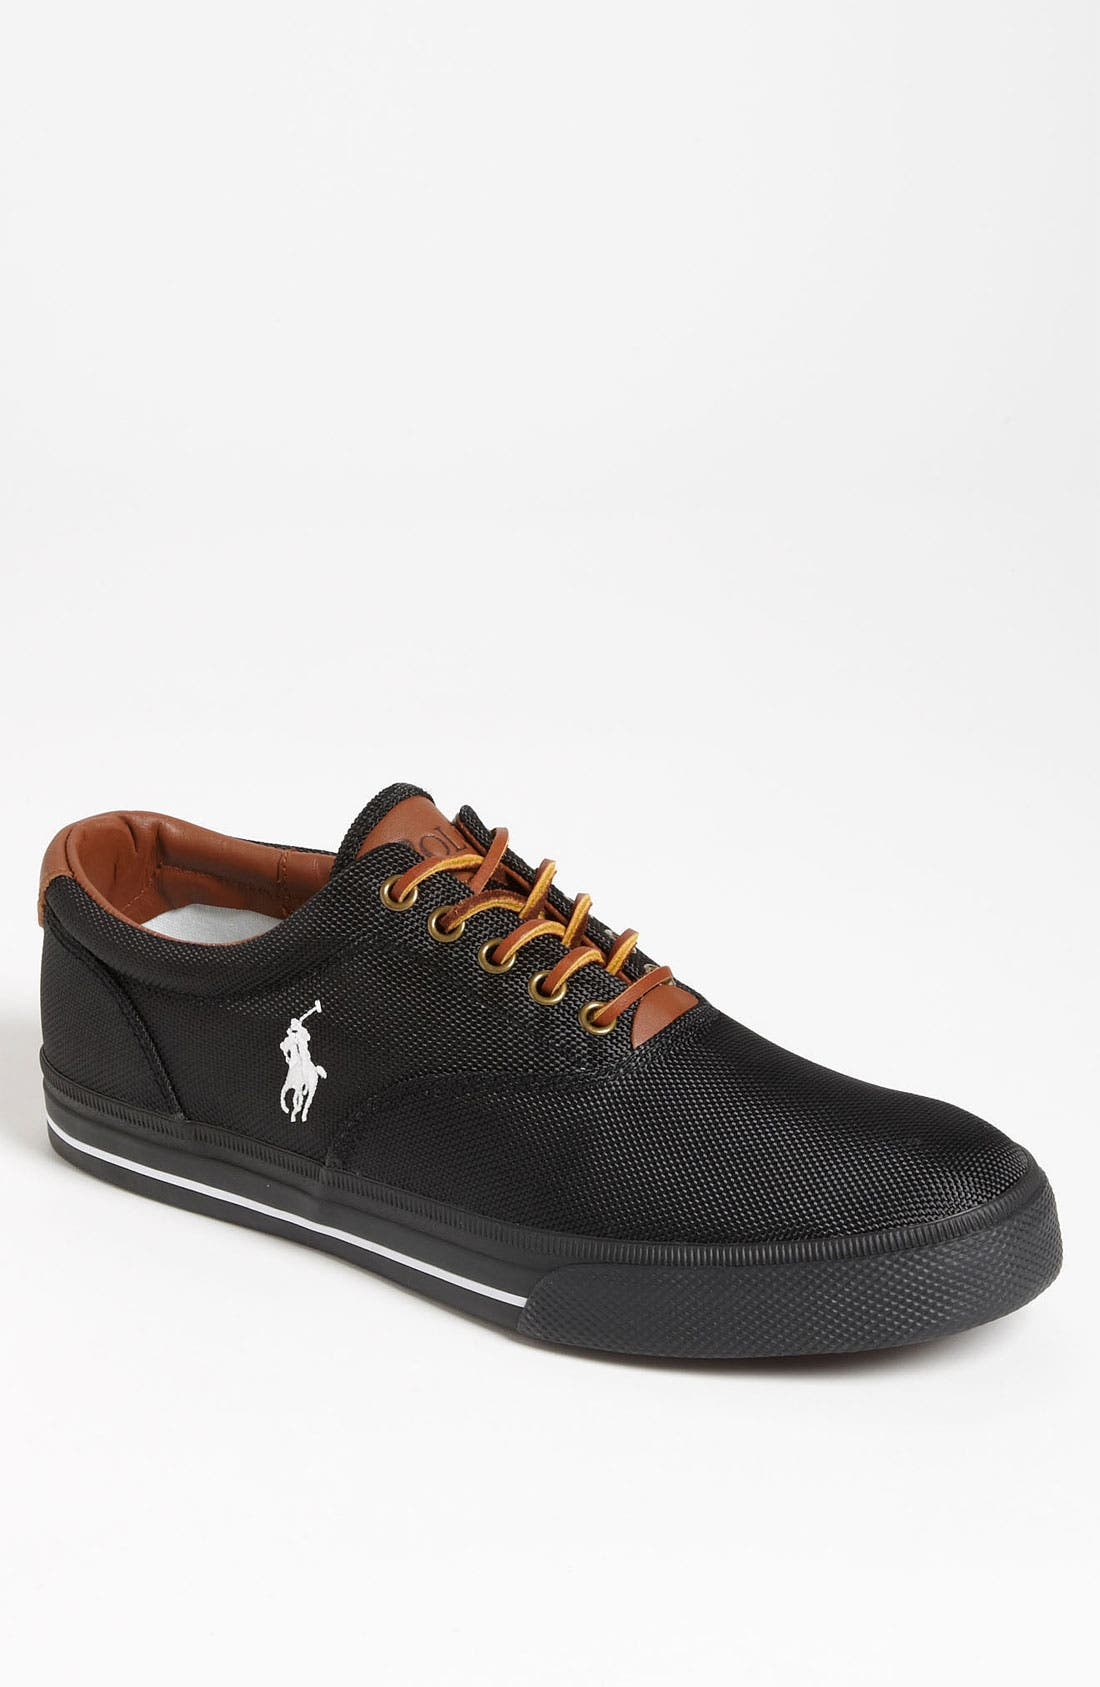 Alternate Image 1 Selected - Polo Ralph Lauren 'Vaughn' Sneaker